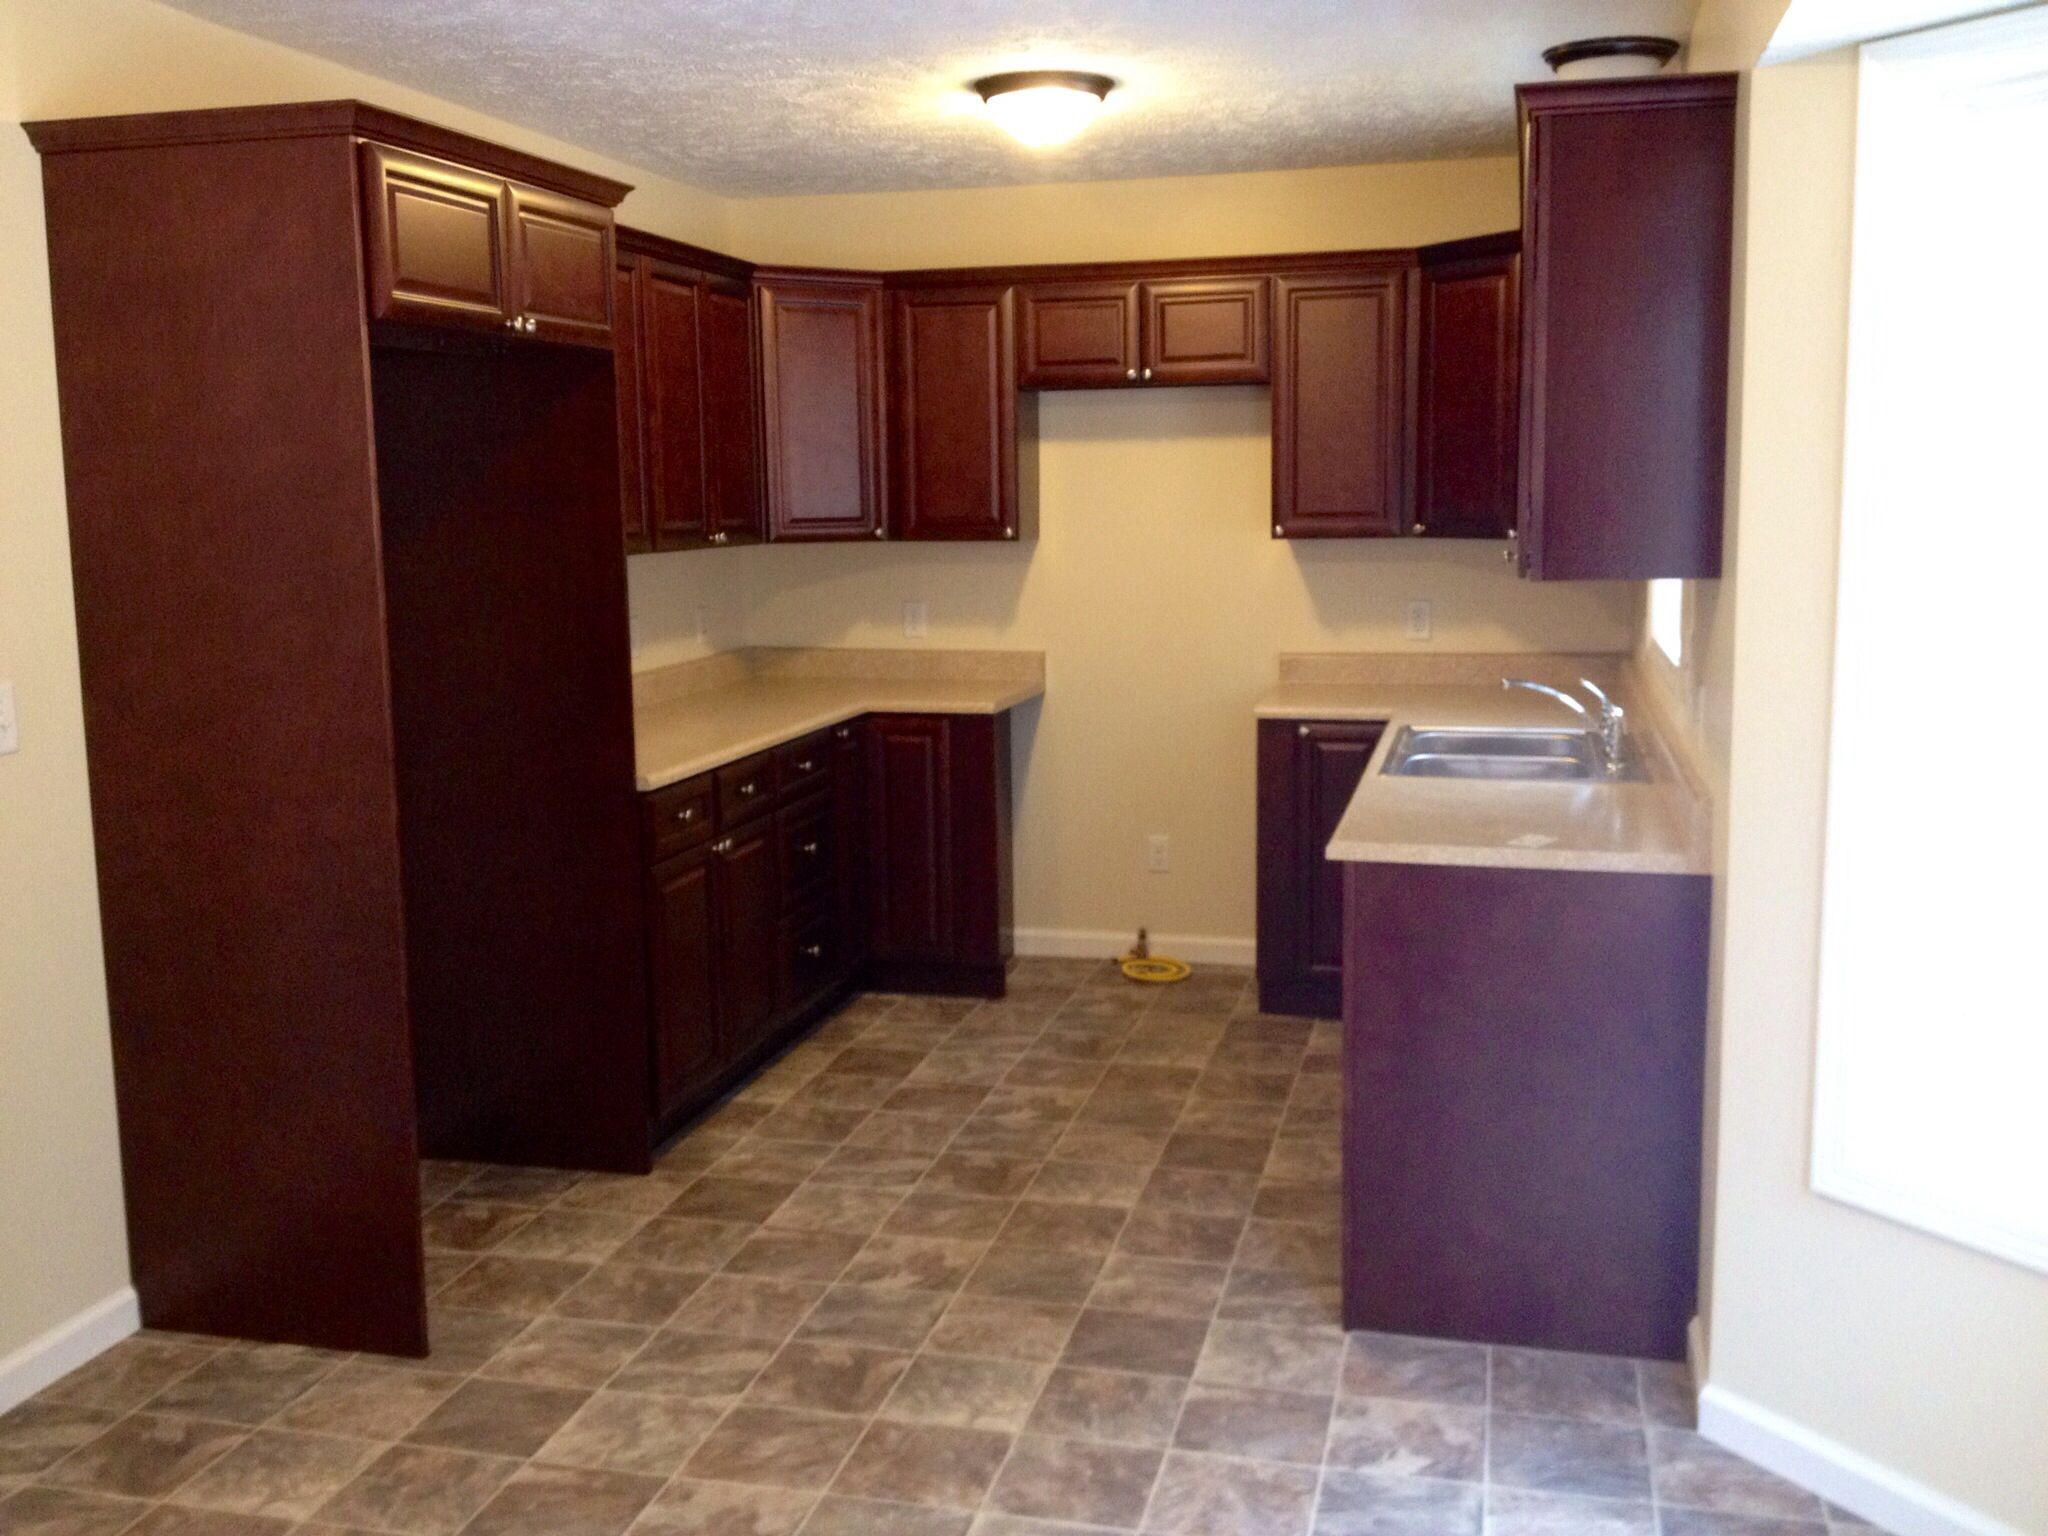 10x10 kitchen cabinets - 10 X 10 Kitchen Yahoo Image Search Results